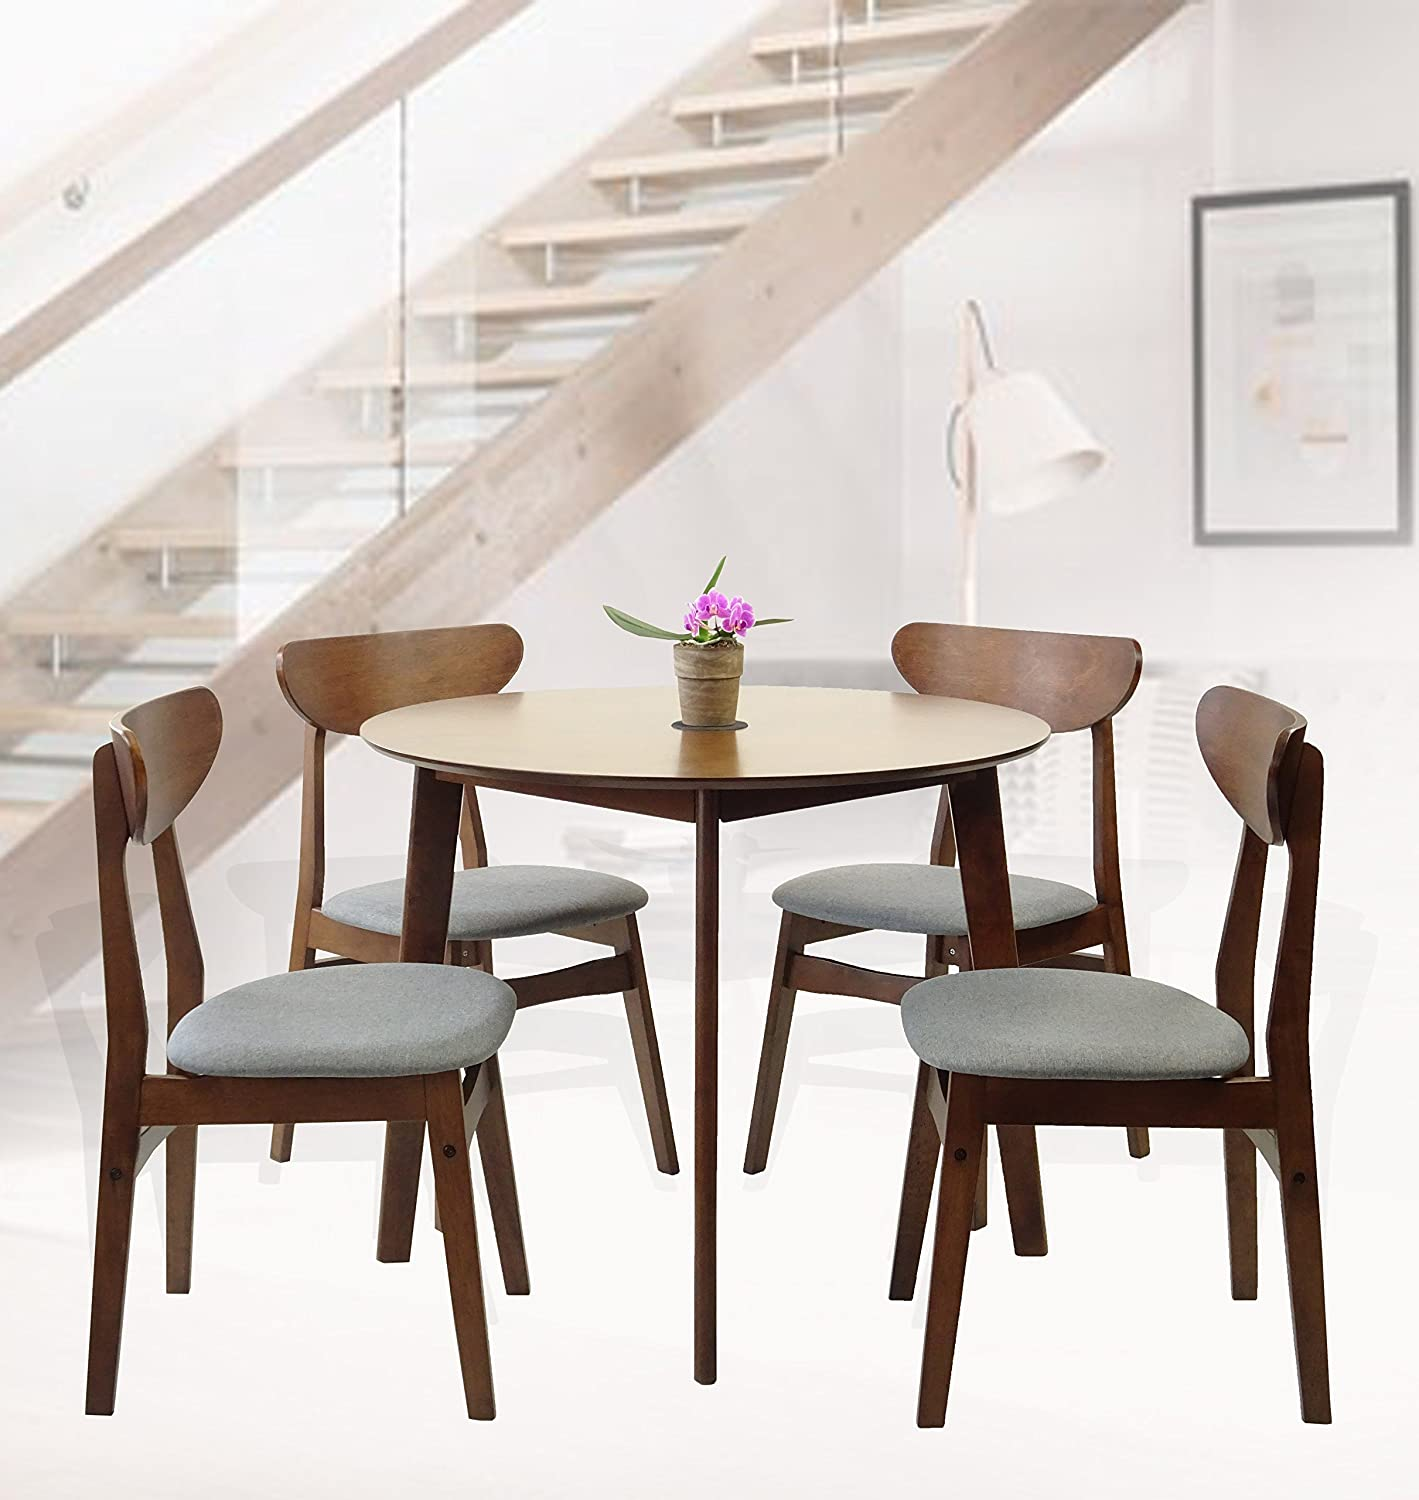 Rattan Wicker Furniture Set of 5 Dining Kitchen Round Table and 4 Yumiko Side Chairs Solid Wood w/Padded Seat Medium Brown Finish